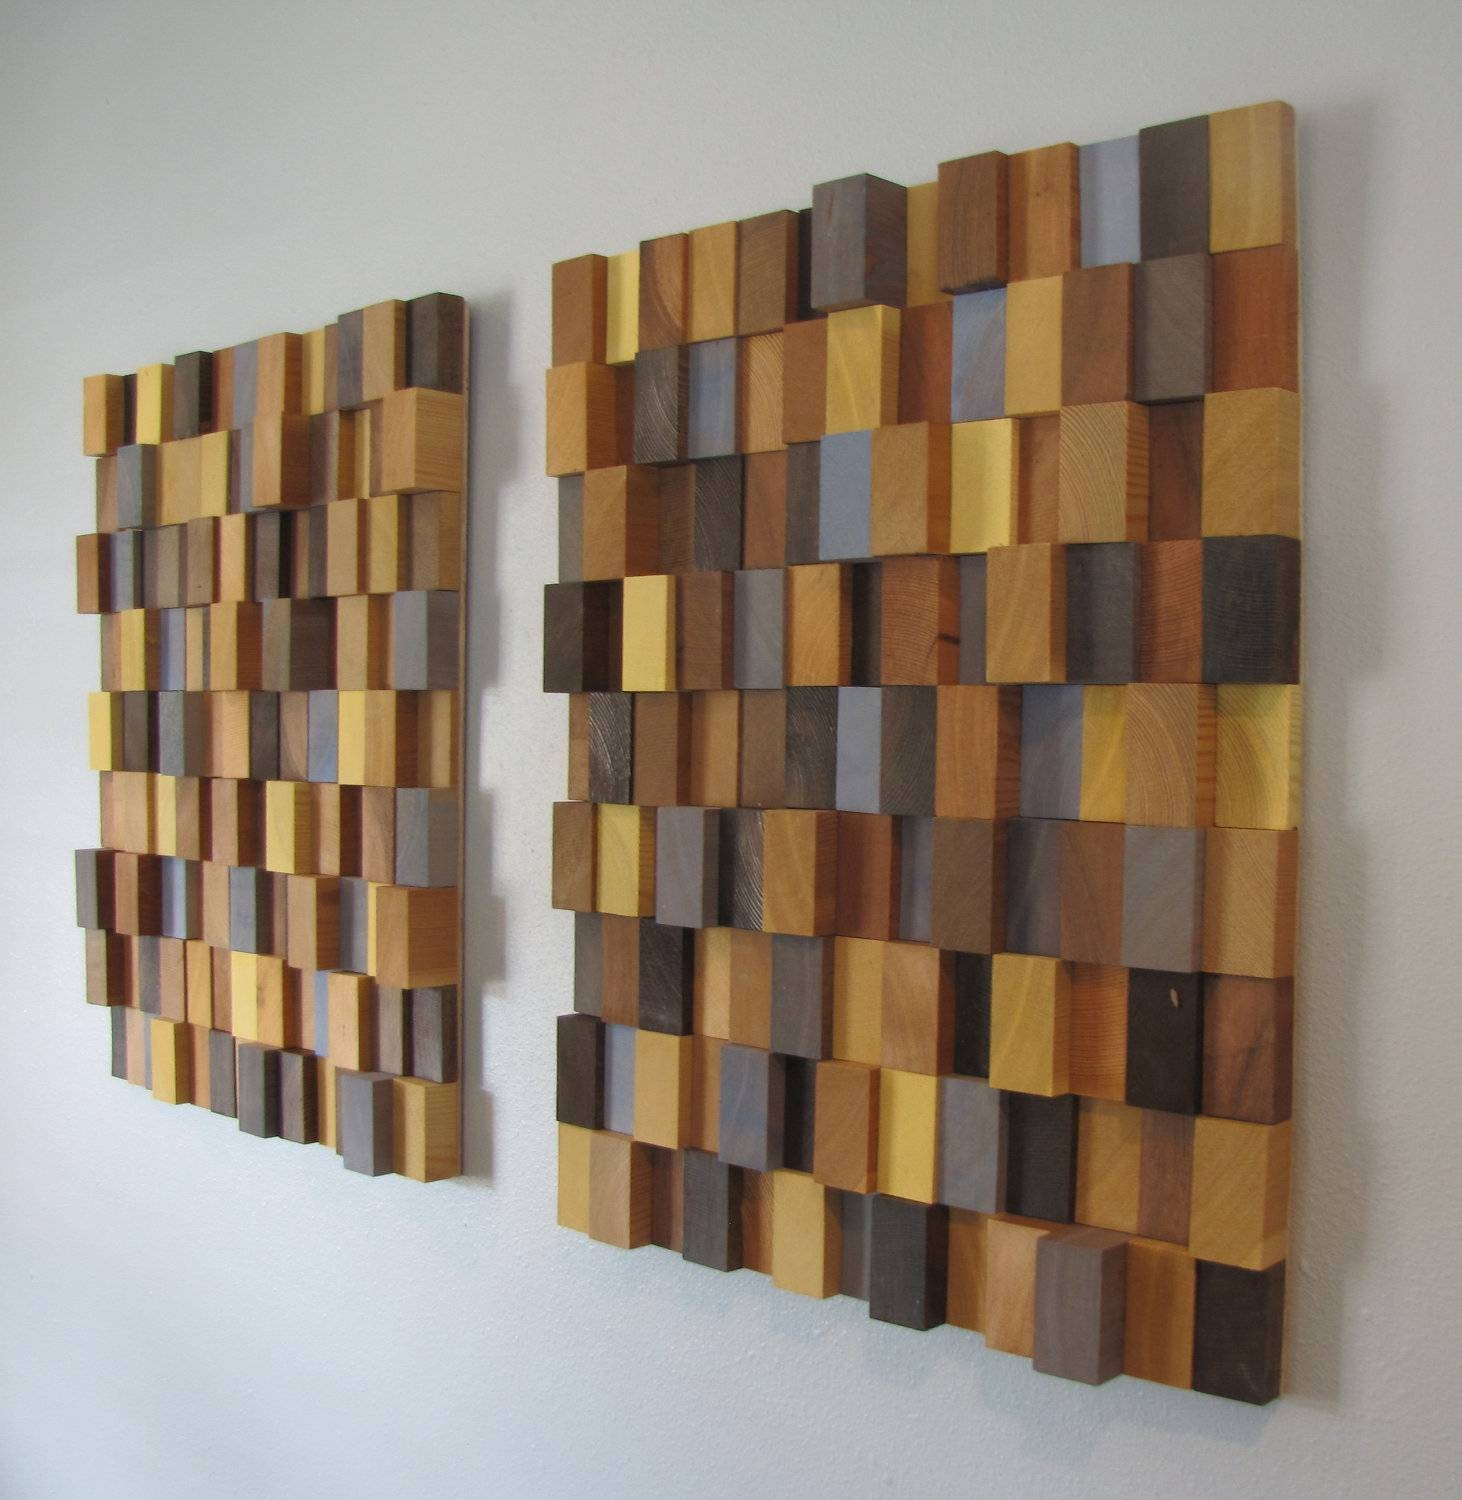 Wall Art Design: Wooden Wall Art Brown Square Yellow Black Grey Regarding 2018 Contemporary 3D Wall Art (View 20 of 20)